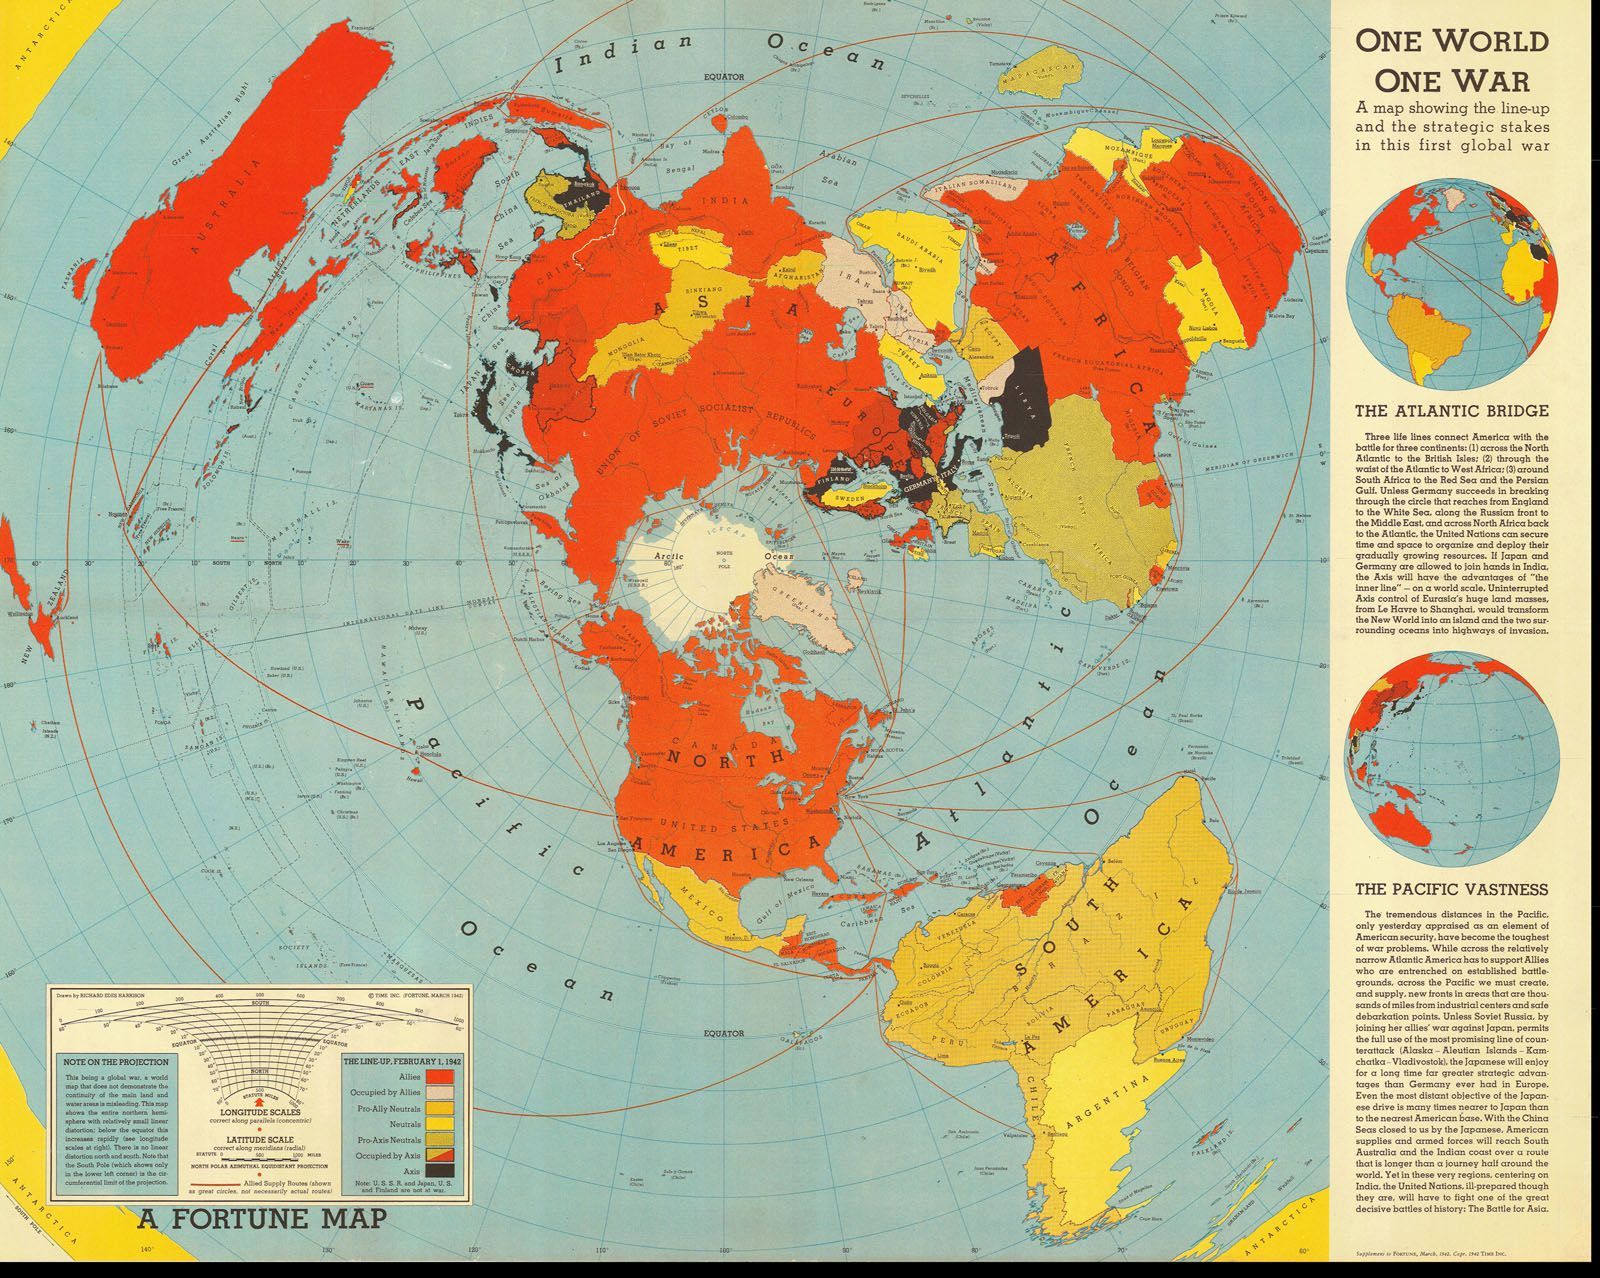 One world one war map 1942 world mappery art illustration one world one war map 1942 world mappery gumiabroncs Images